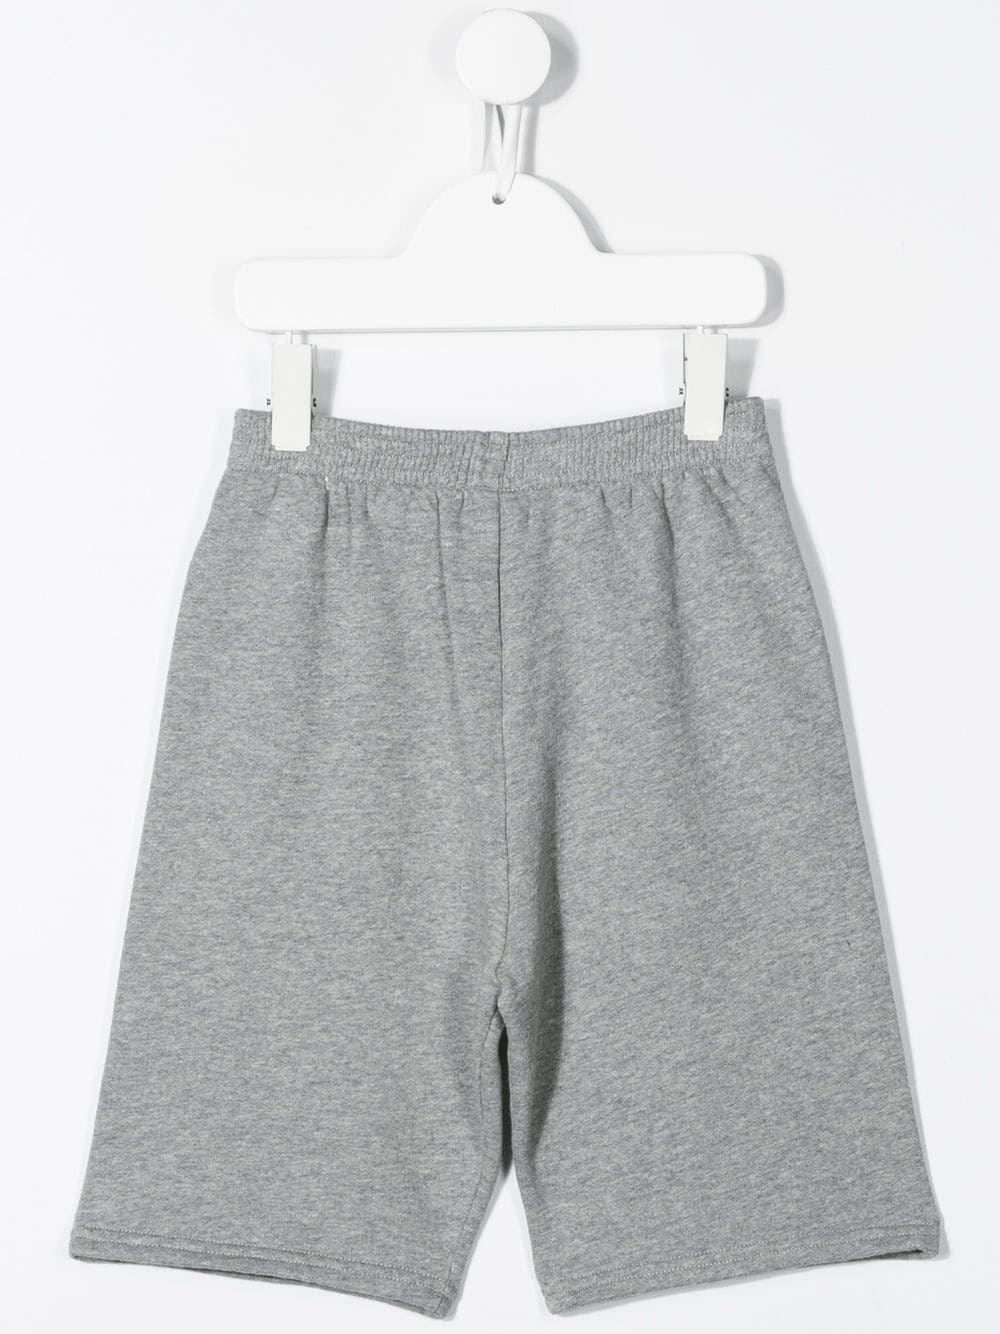 BALENCIAGA KIDS logo print shorts grey - Maison De Fashion